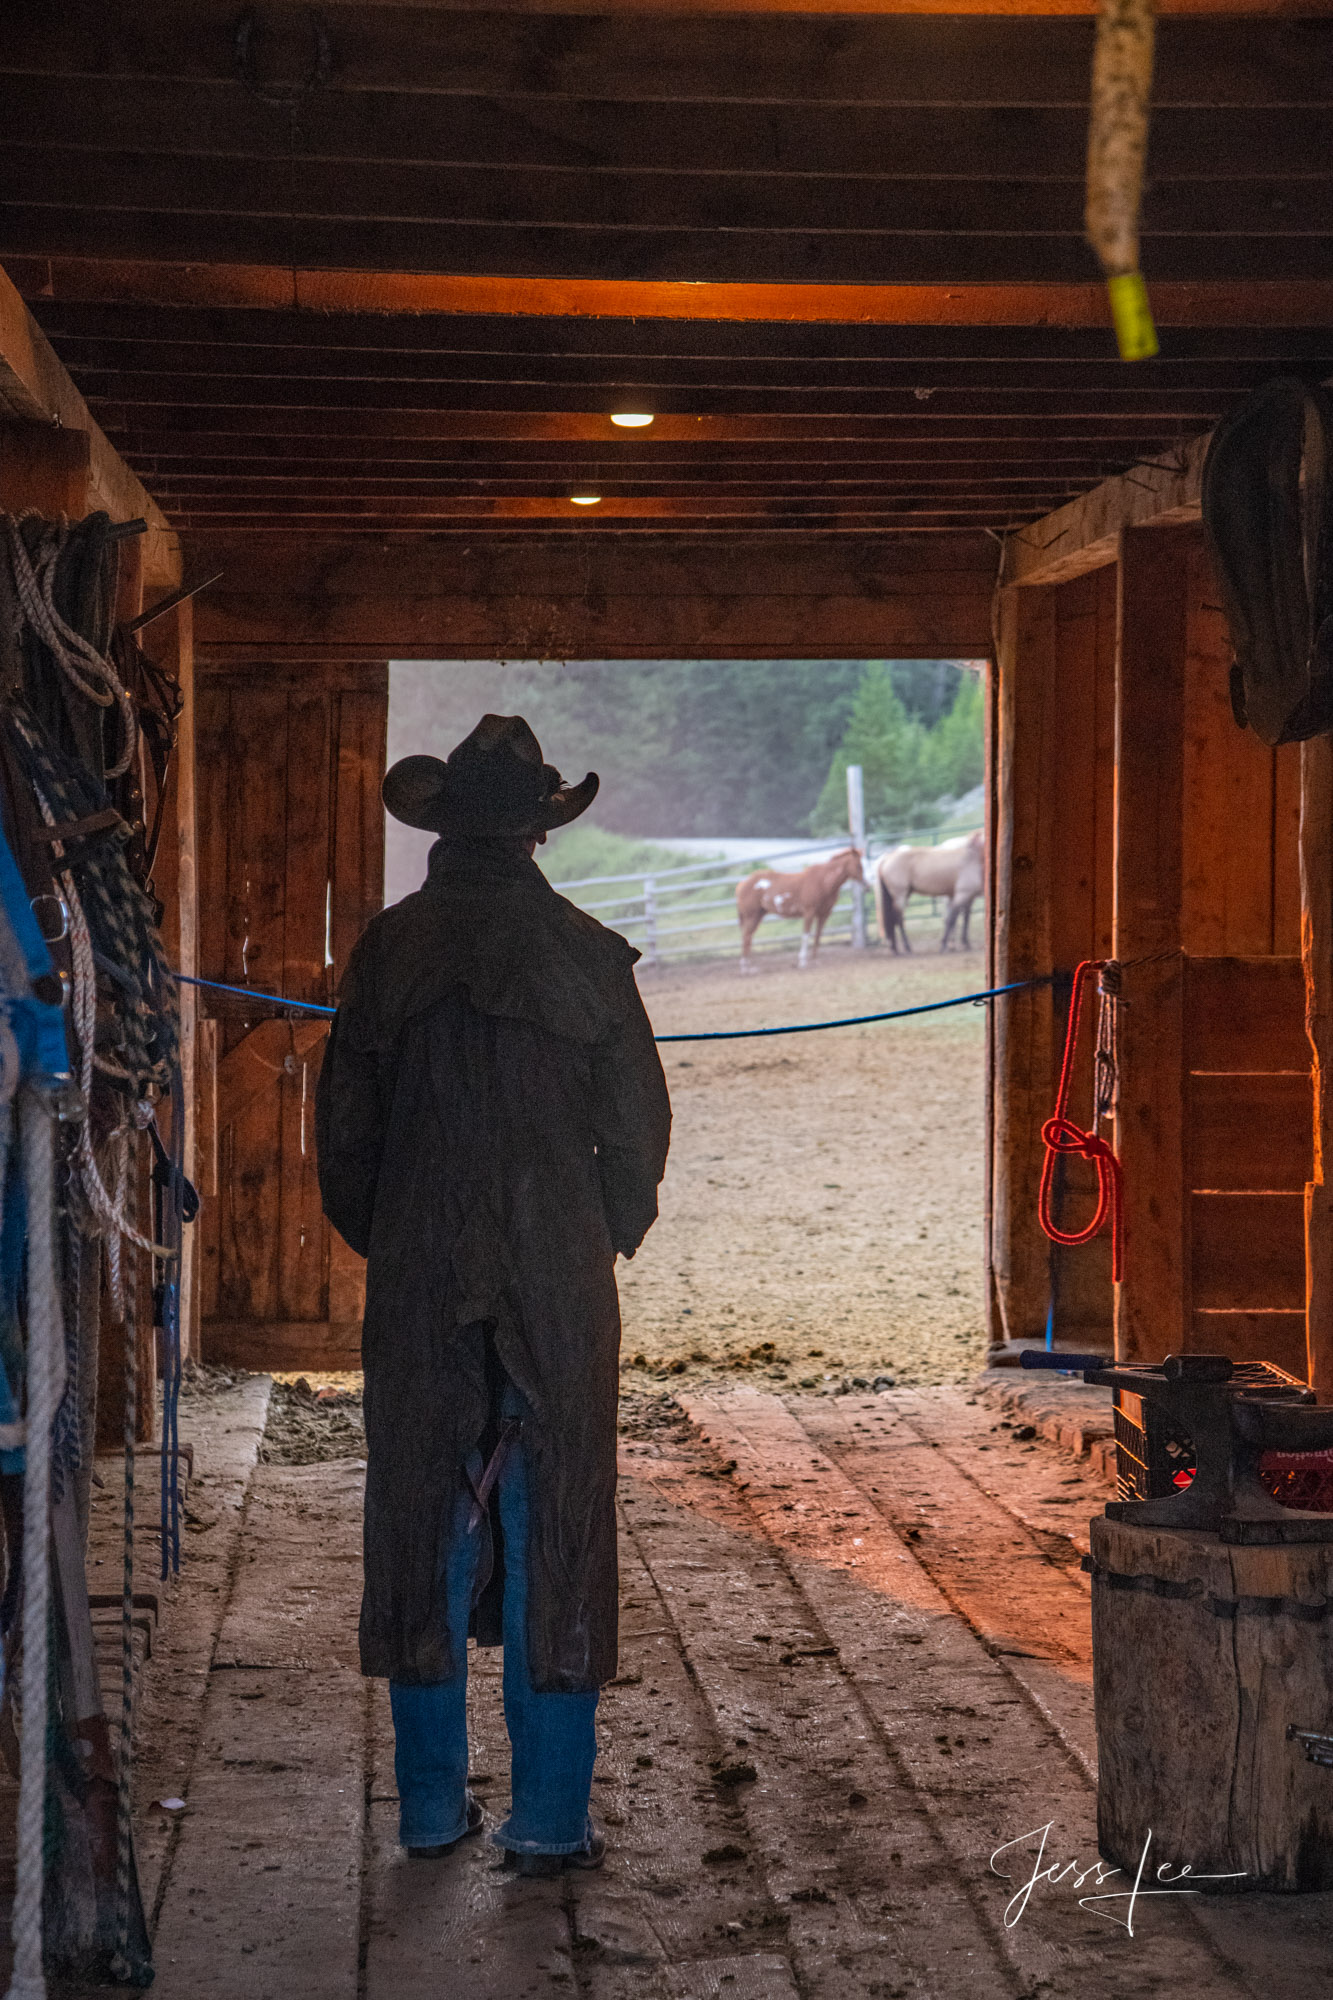 Fine Art Limited Edition Photography of Cowboys, Horses and life in the West. Young cowboy stops to think about what is coming...